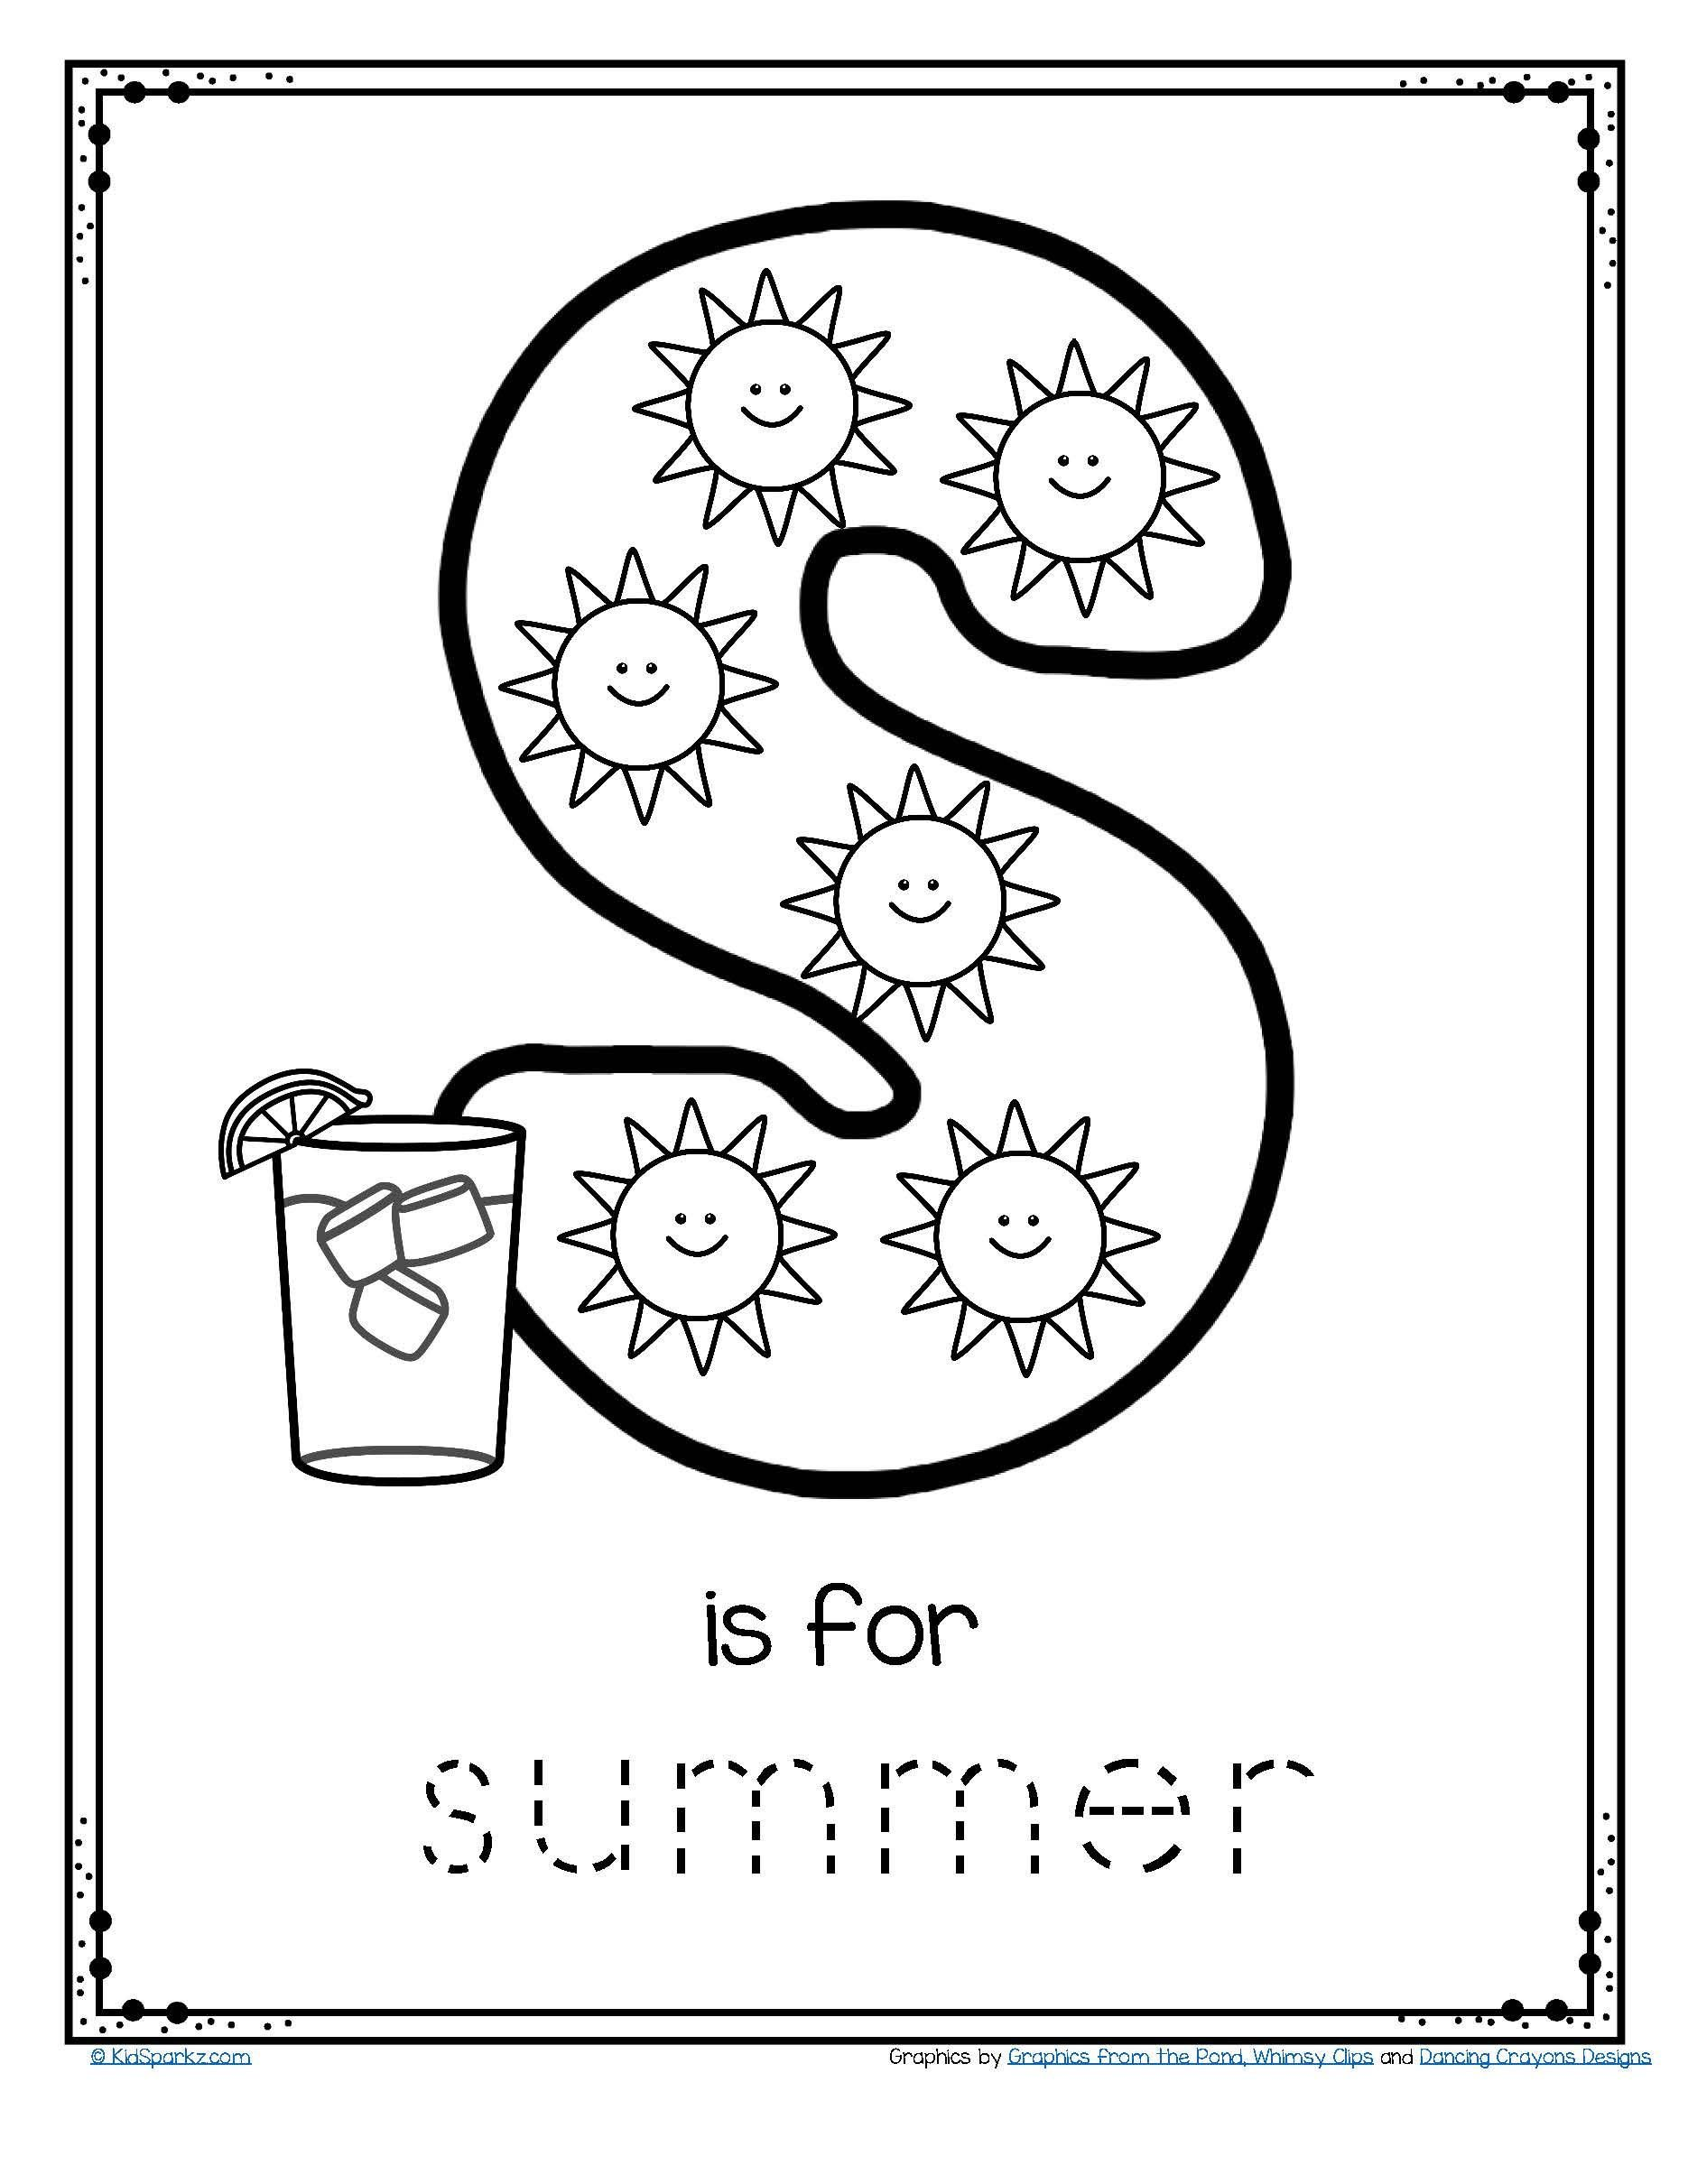 Preschool Math Worksheets Pdf Worksheets Printable Preschool Summer Free Pre Worksheets